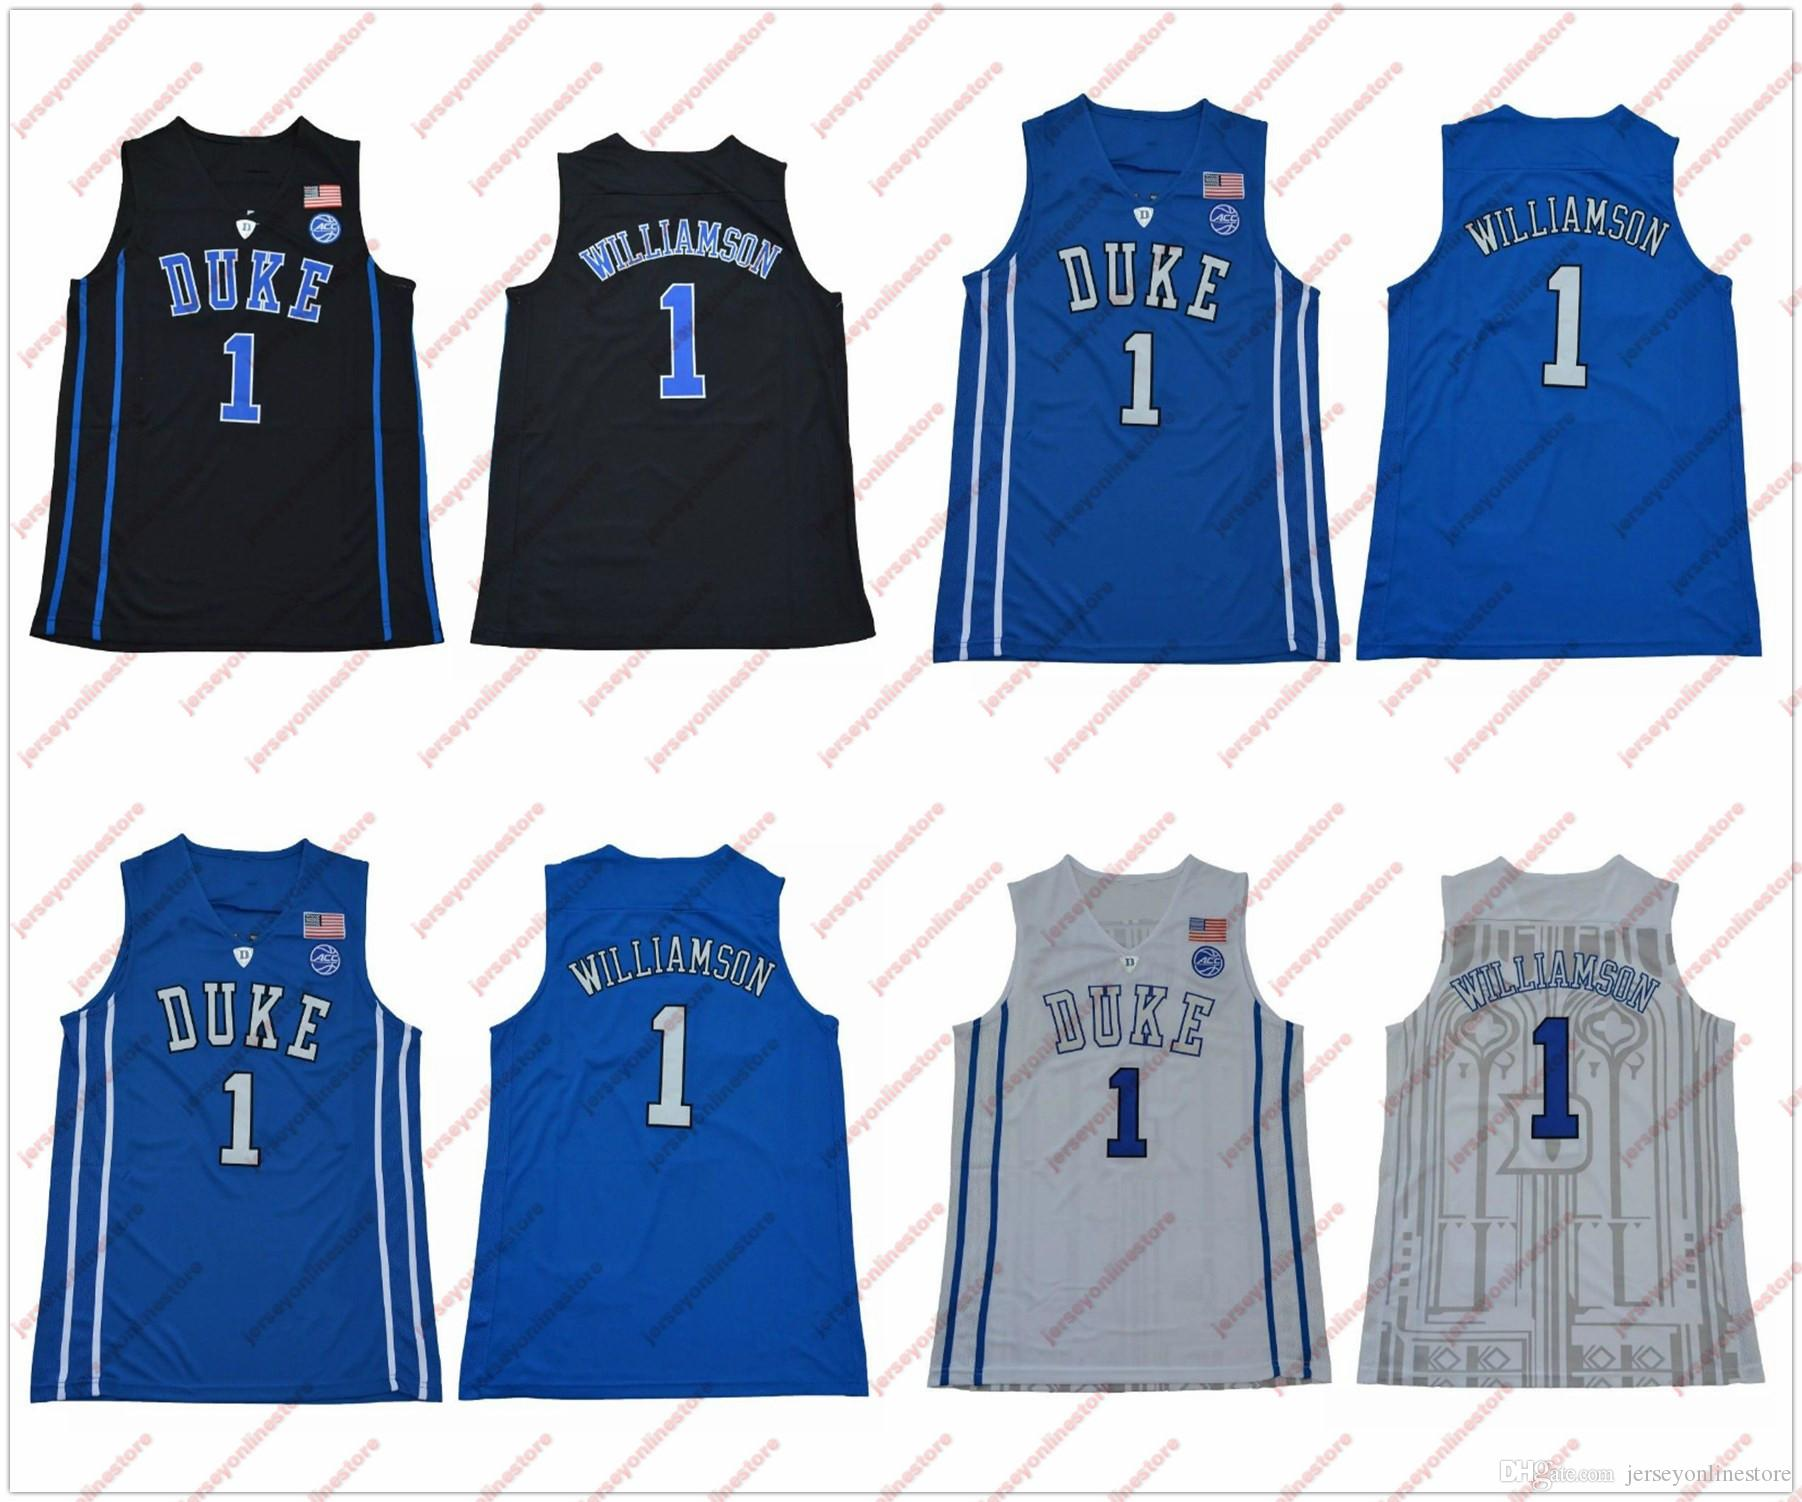 buy popular eacb9 d3721 Mens Duke Blue Devils #1 Zion Williamson Jersey Black Blue White Zion  Williamson Duke College Basketball Jerseys Stitched